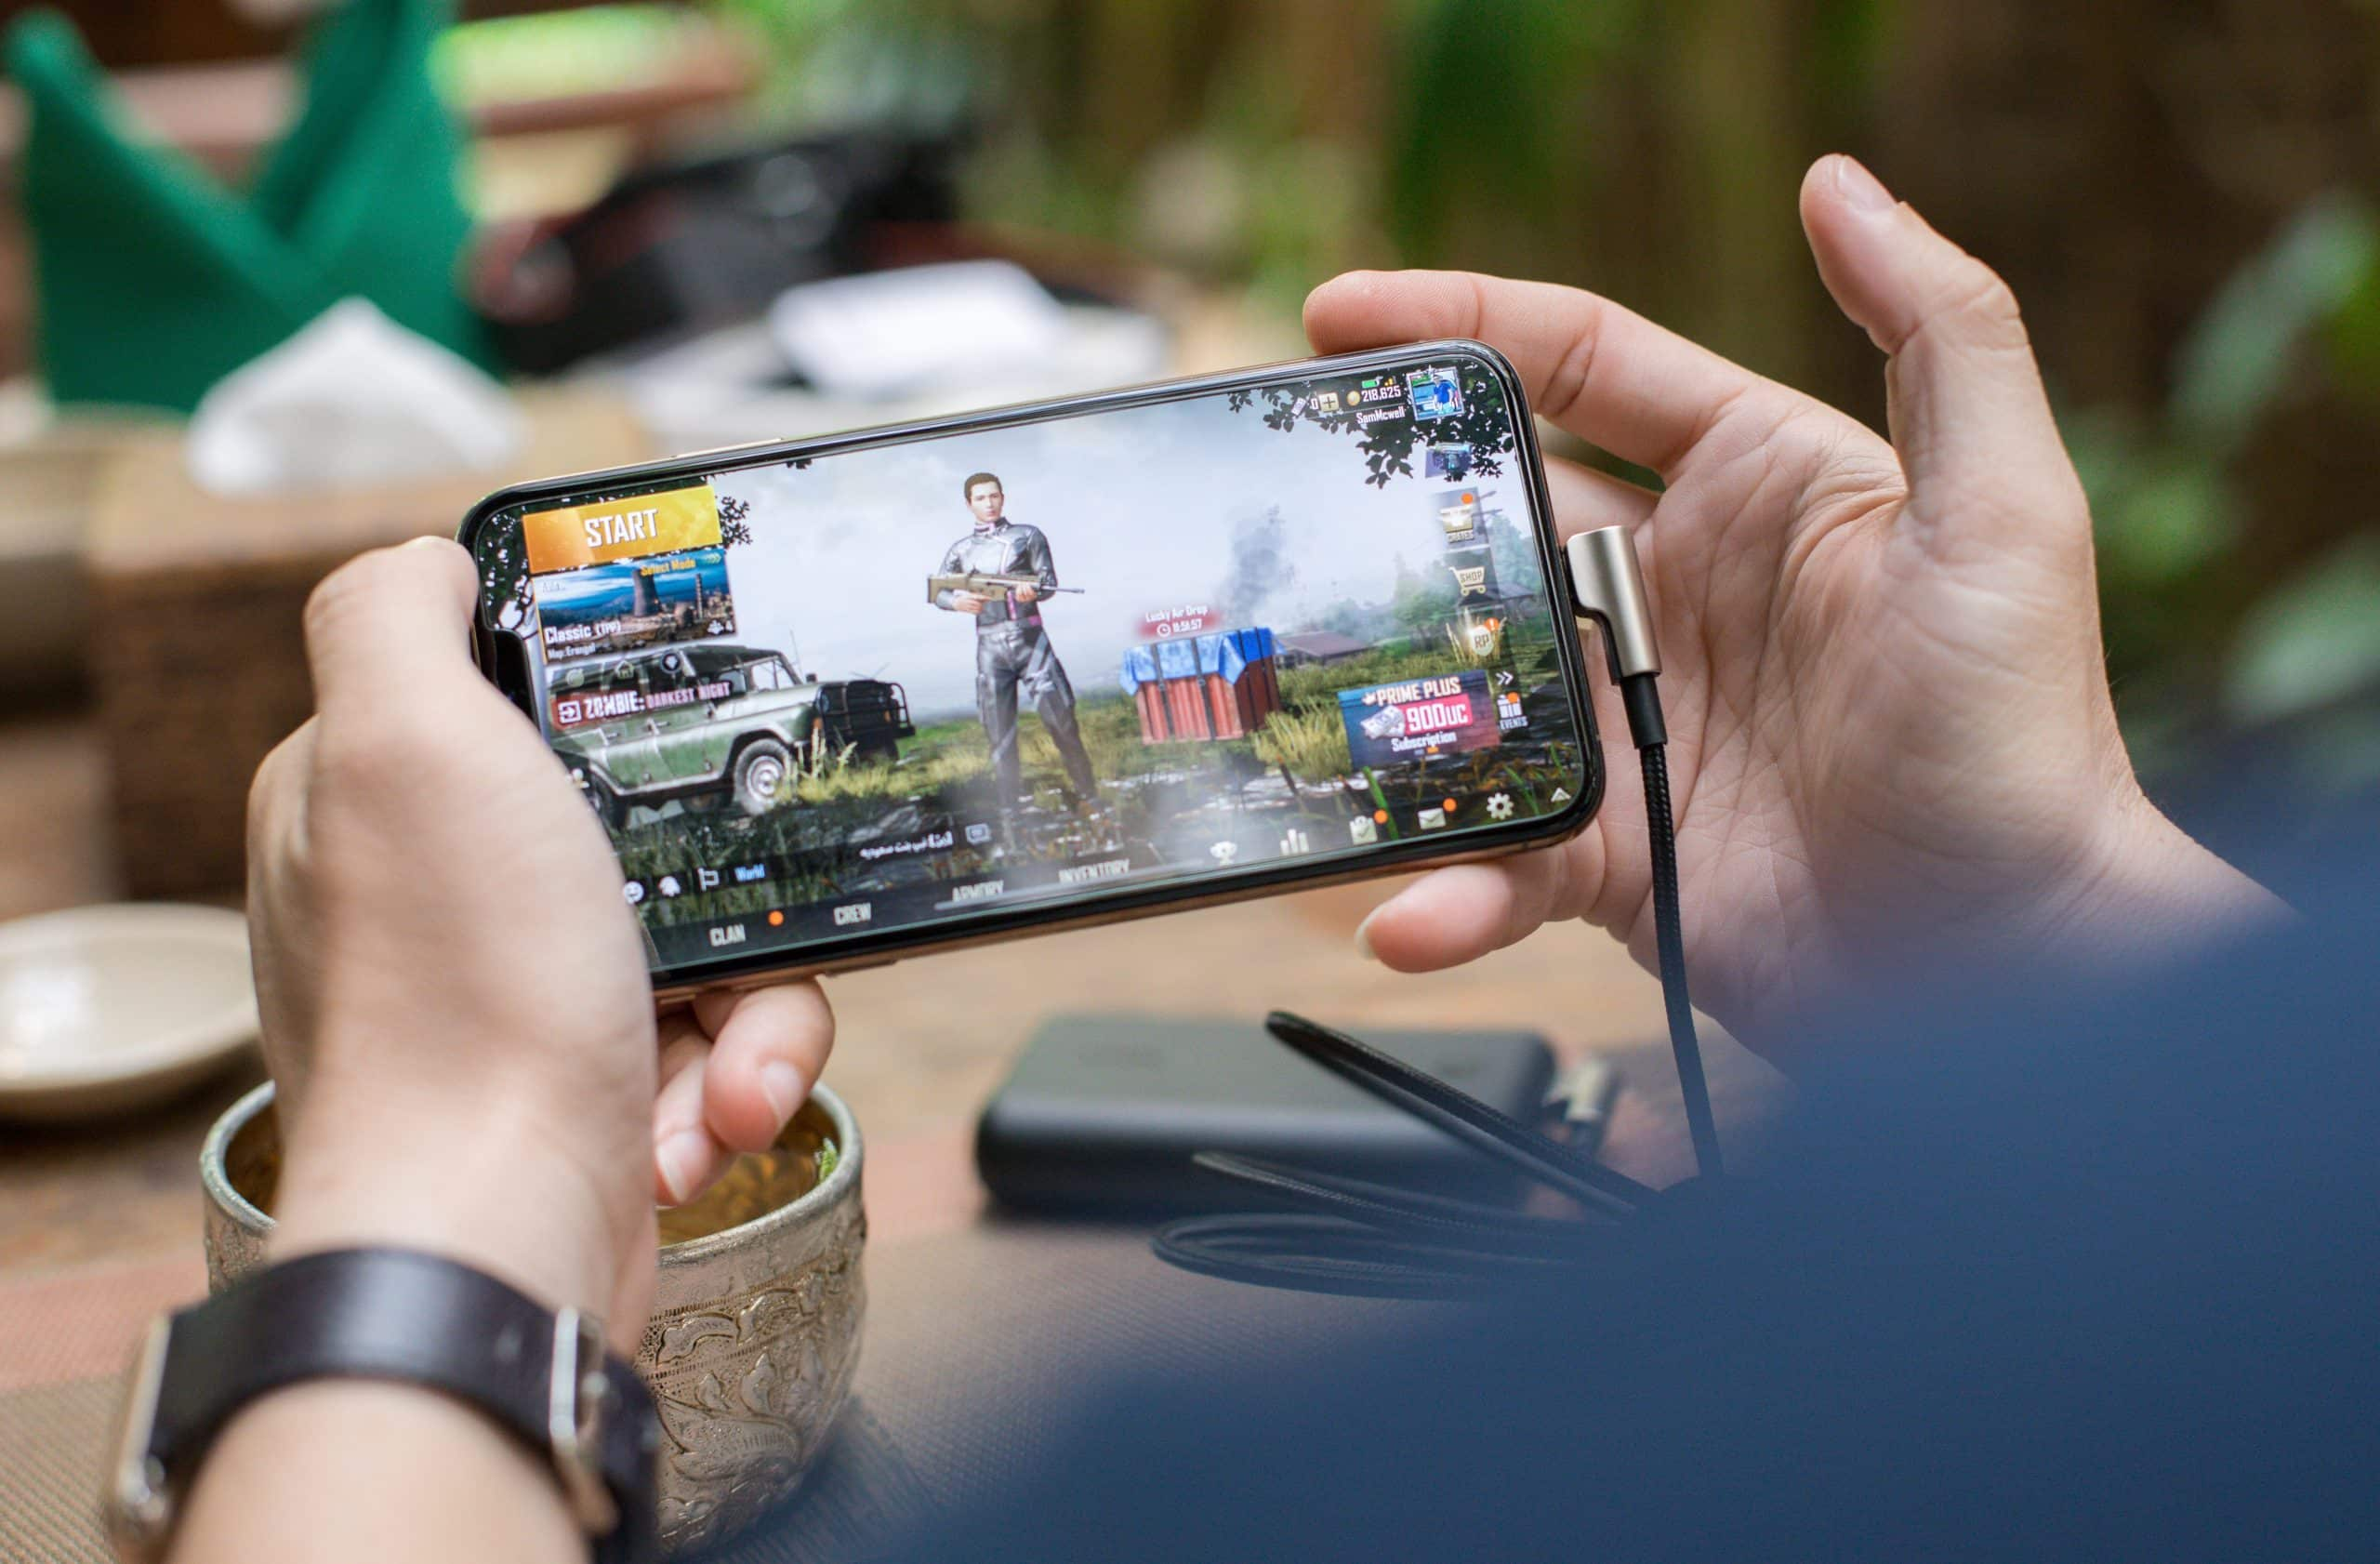 Why mobile gaming is so popular